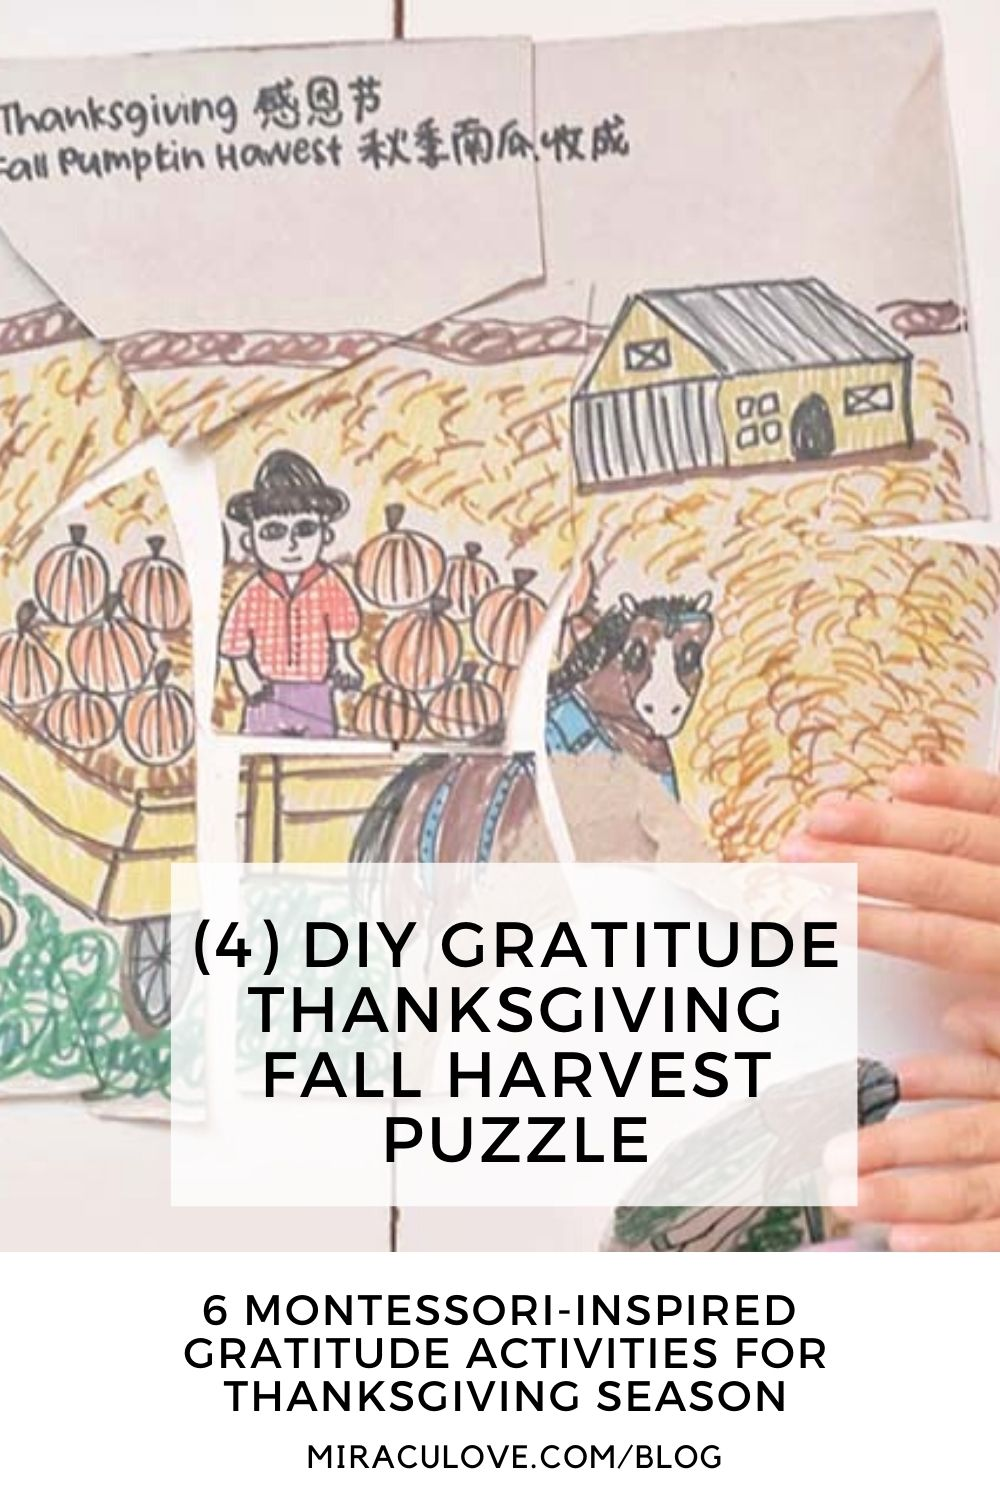 6 Thanksgiving Gratitude Activities for Toddlers to Learn Kindness & Grace